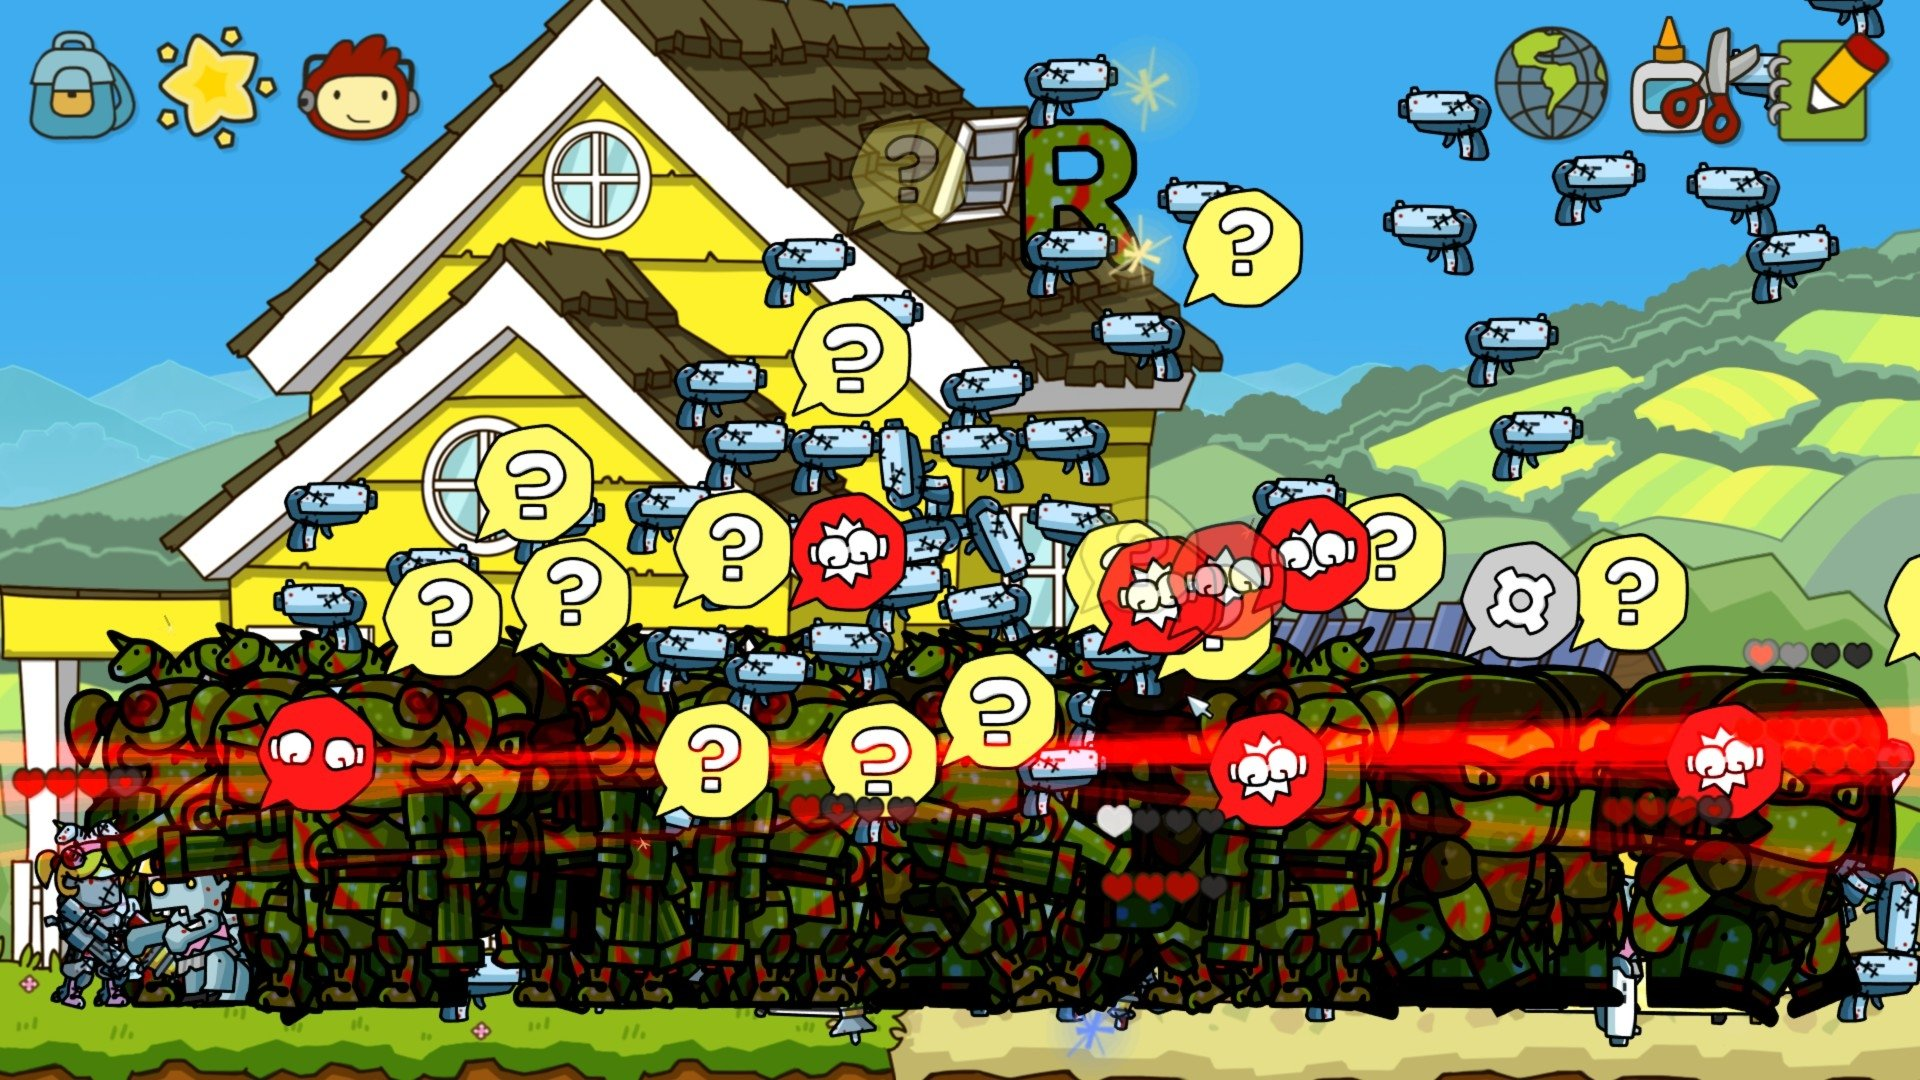 How To Use Gif As Wallpaper Iphone X Scribblenauts Unlimited Full Hd Wallpaper And Background